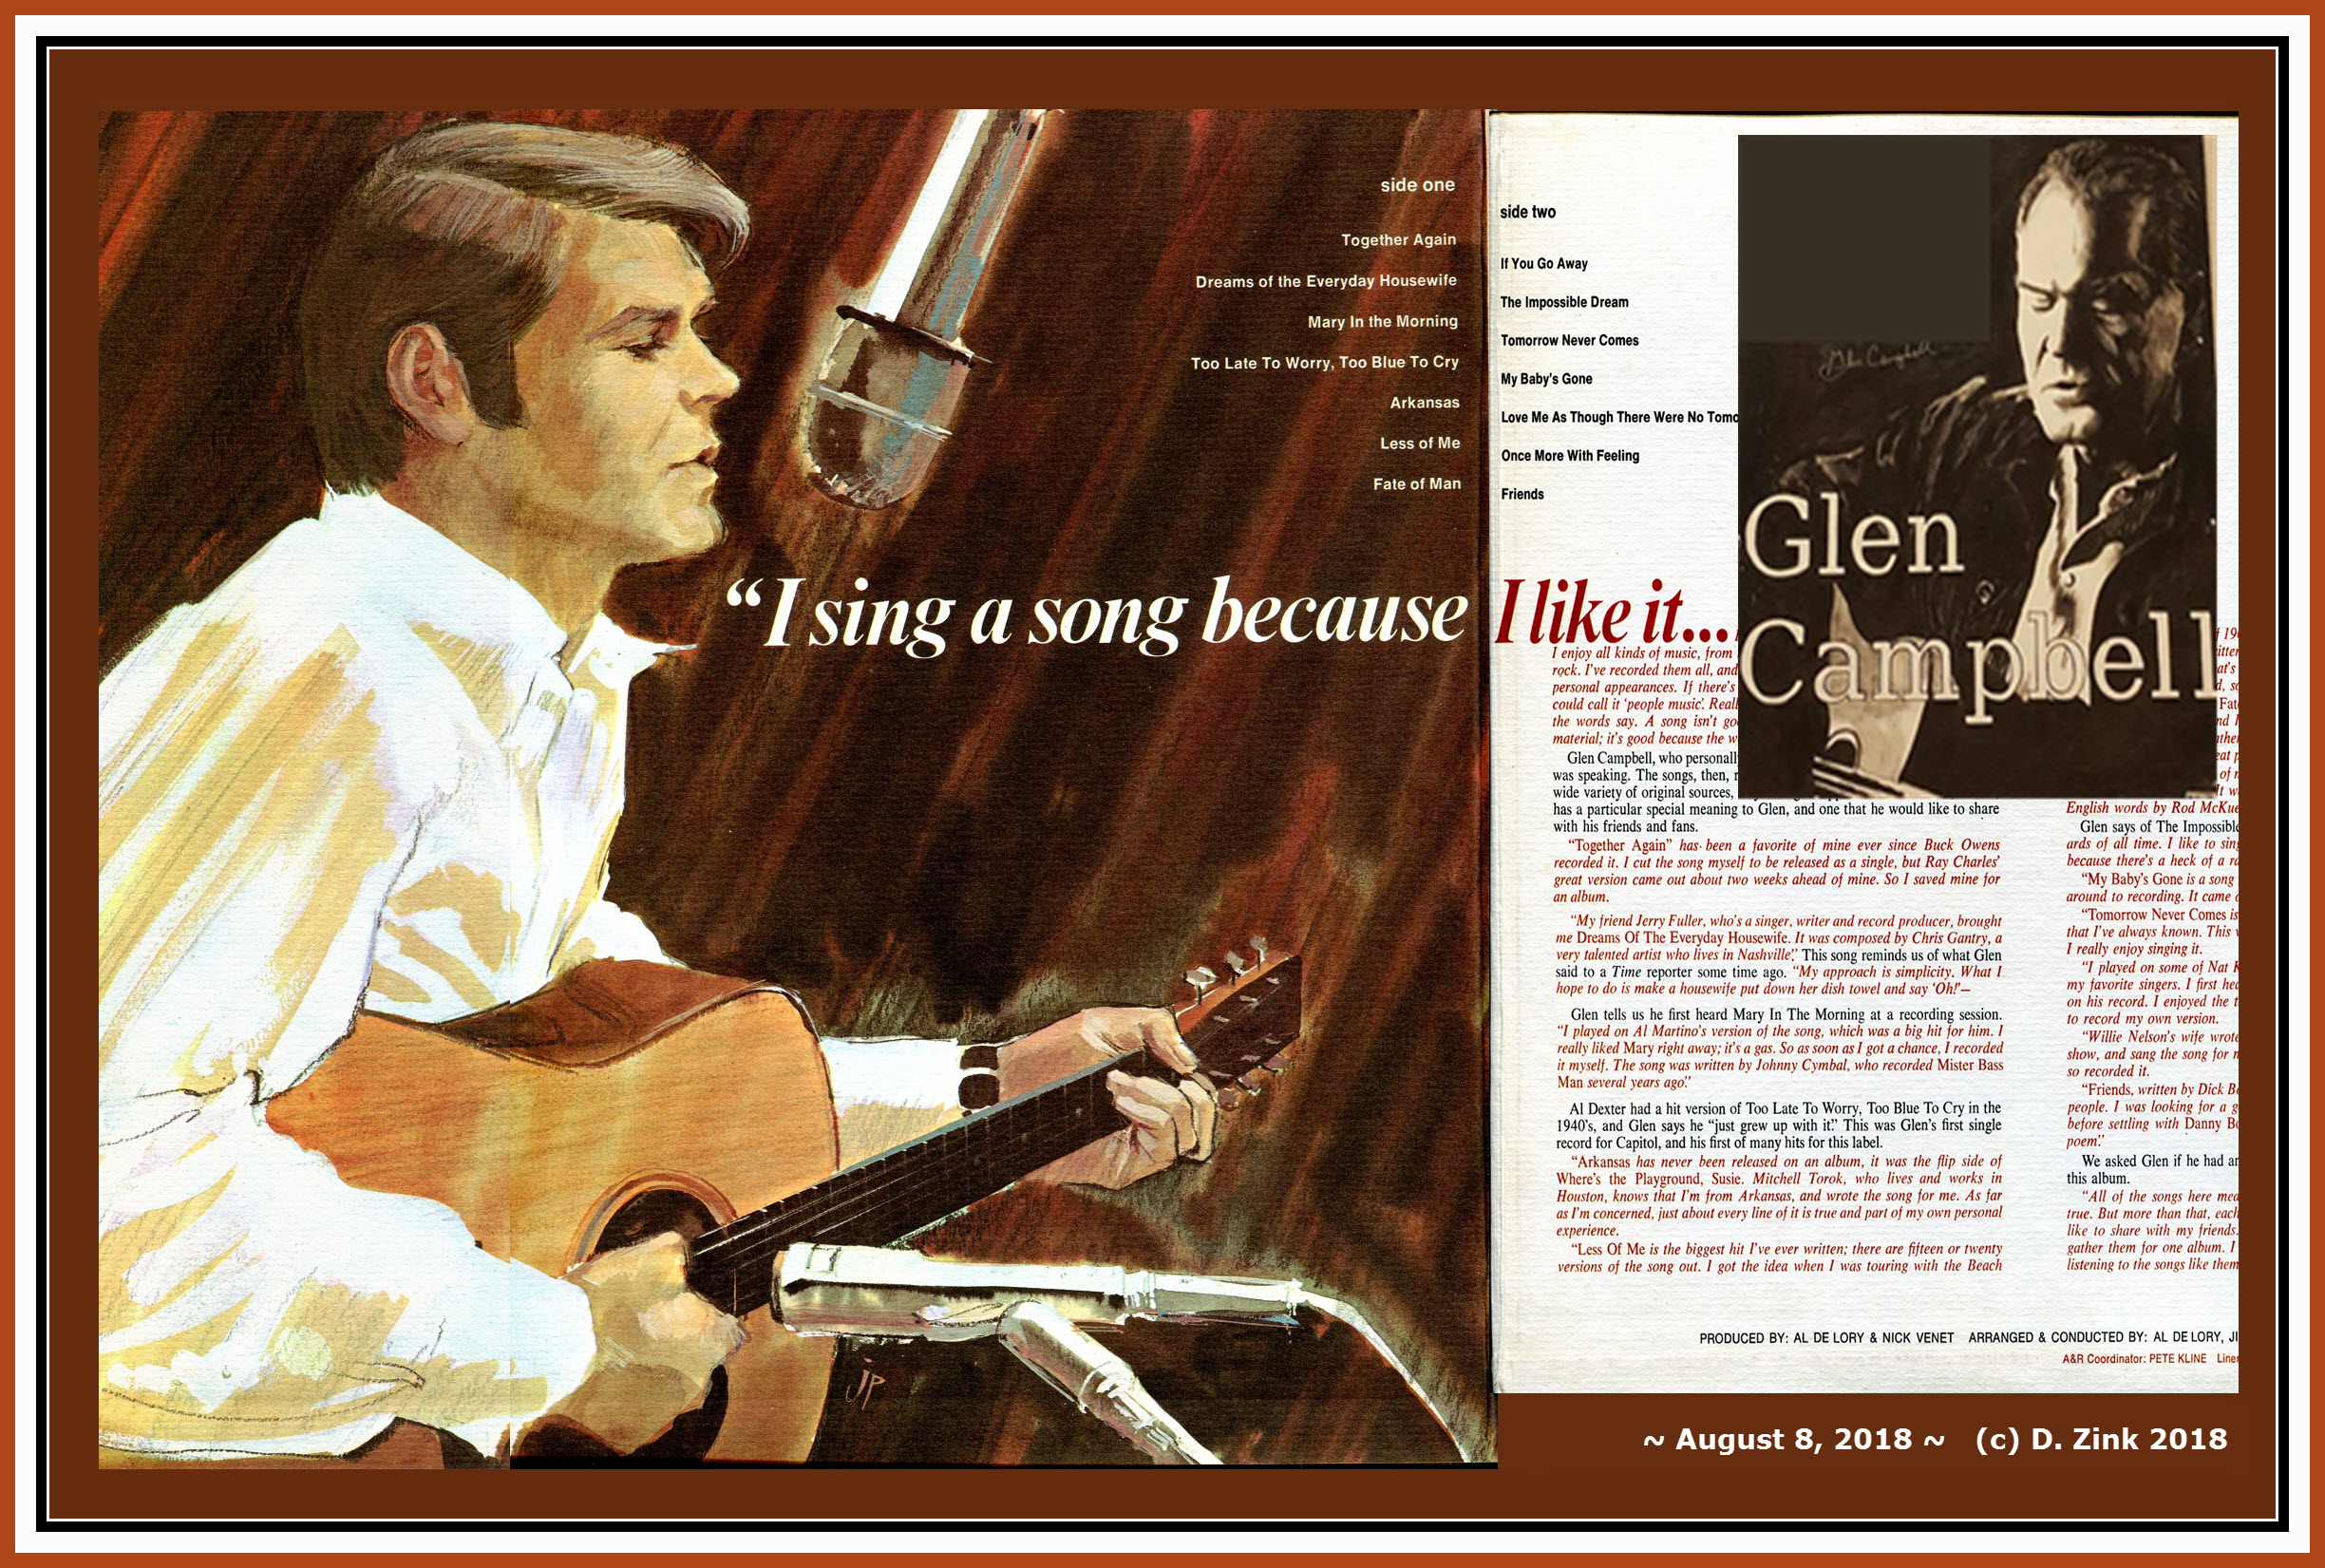 I Sing A Song_Glen Campbell Tribute_Glen Campbell Forums On The Net_DZ.jpg